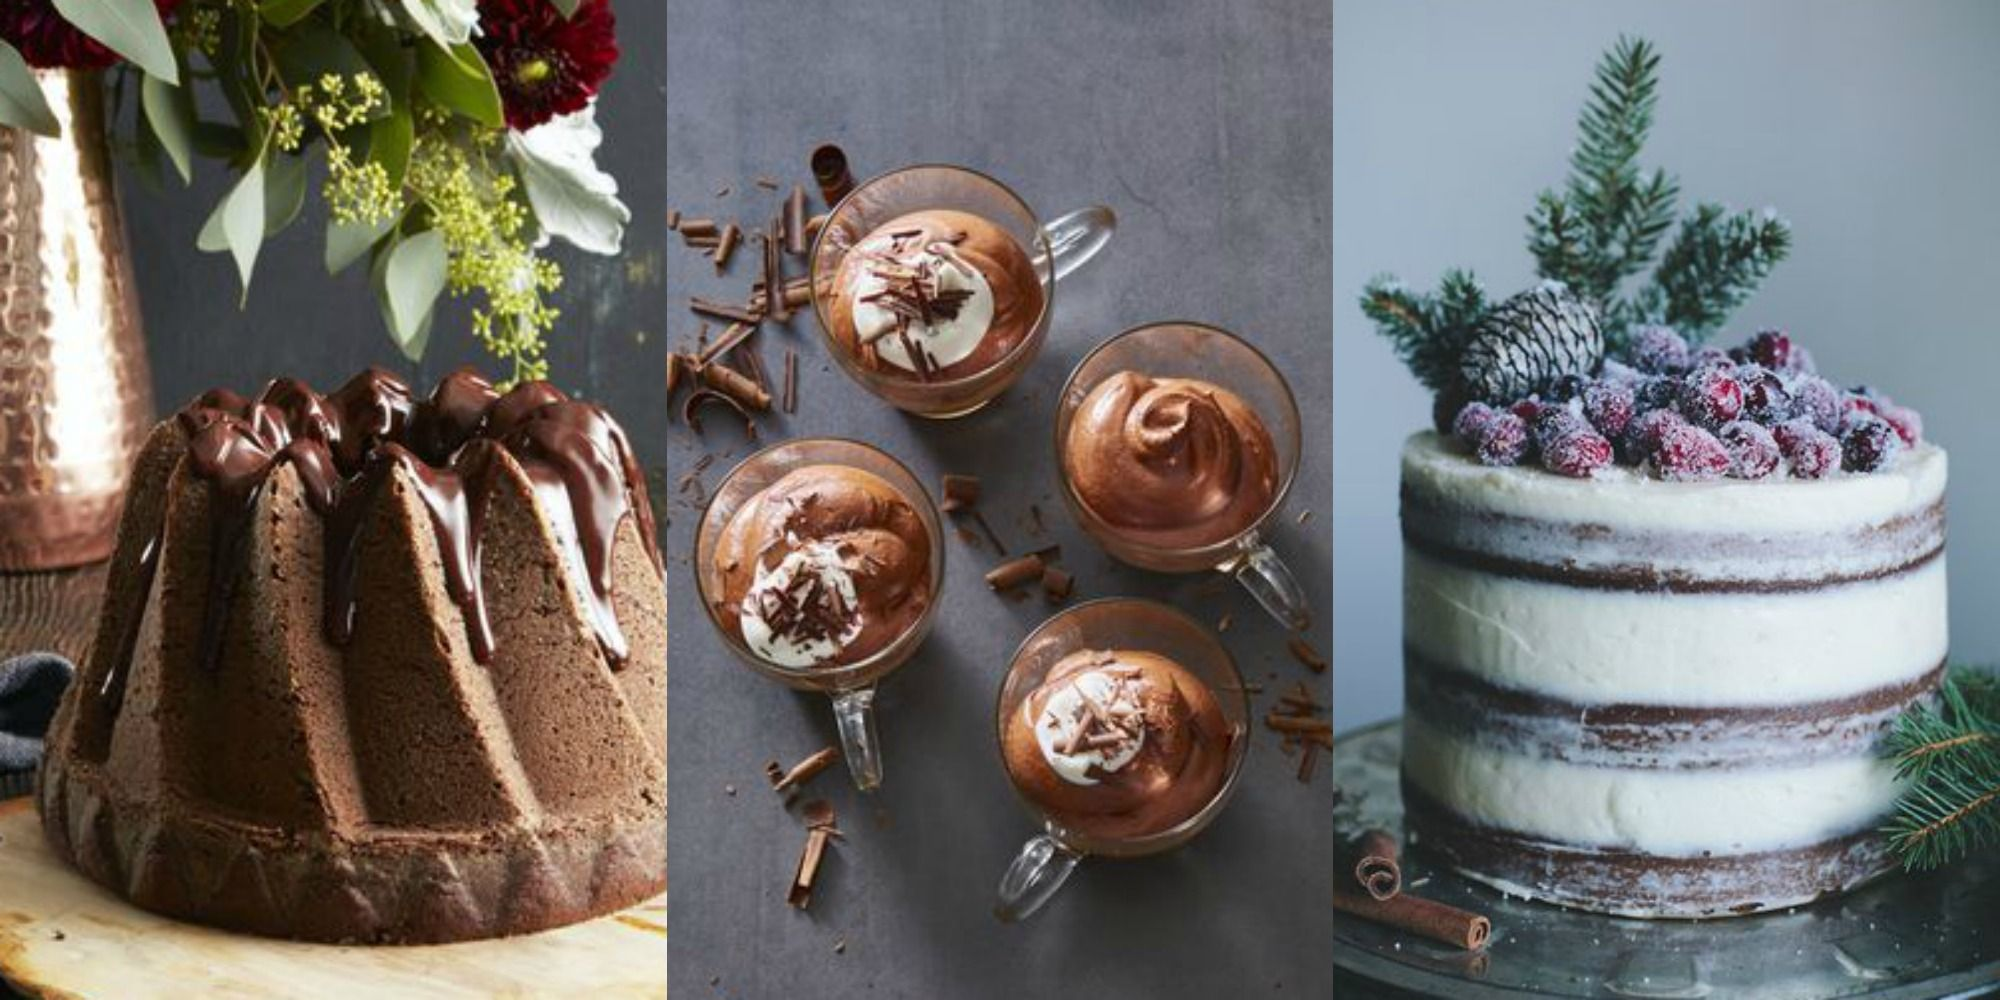 Here are some festive desserts to be presented for March 8